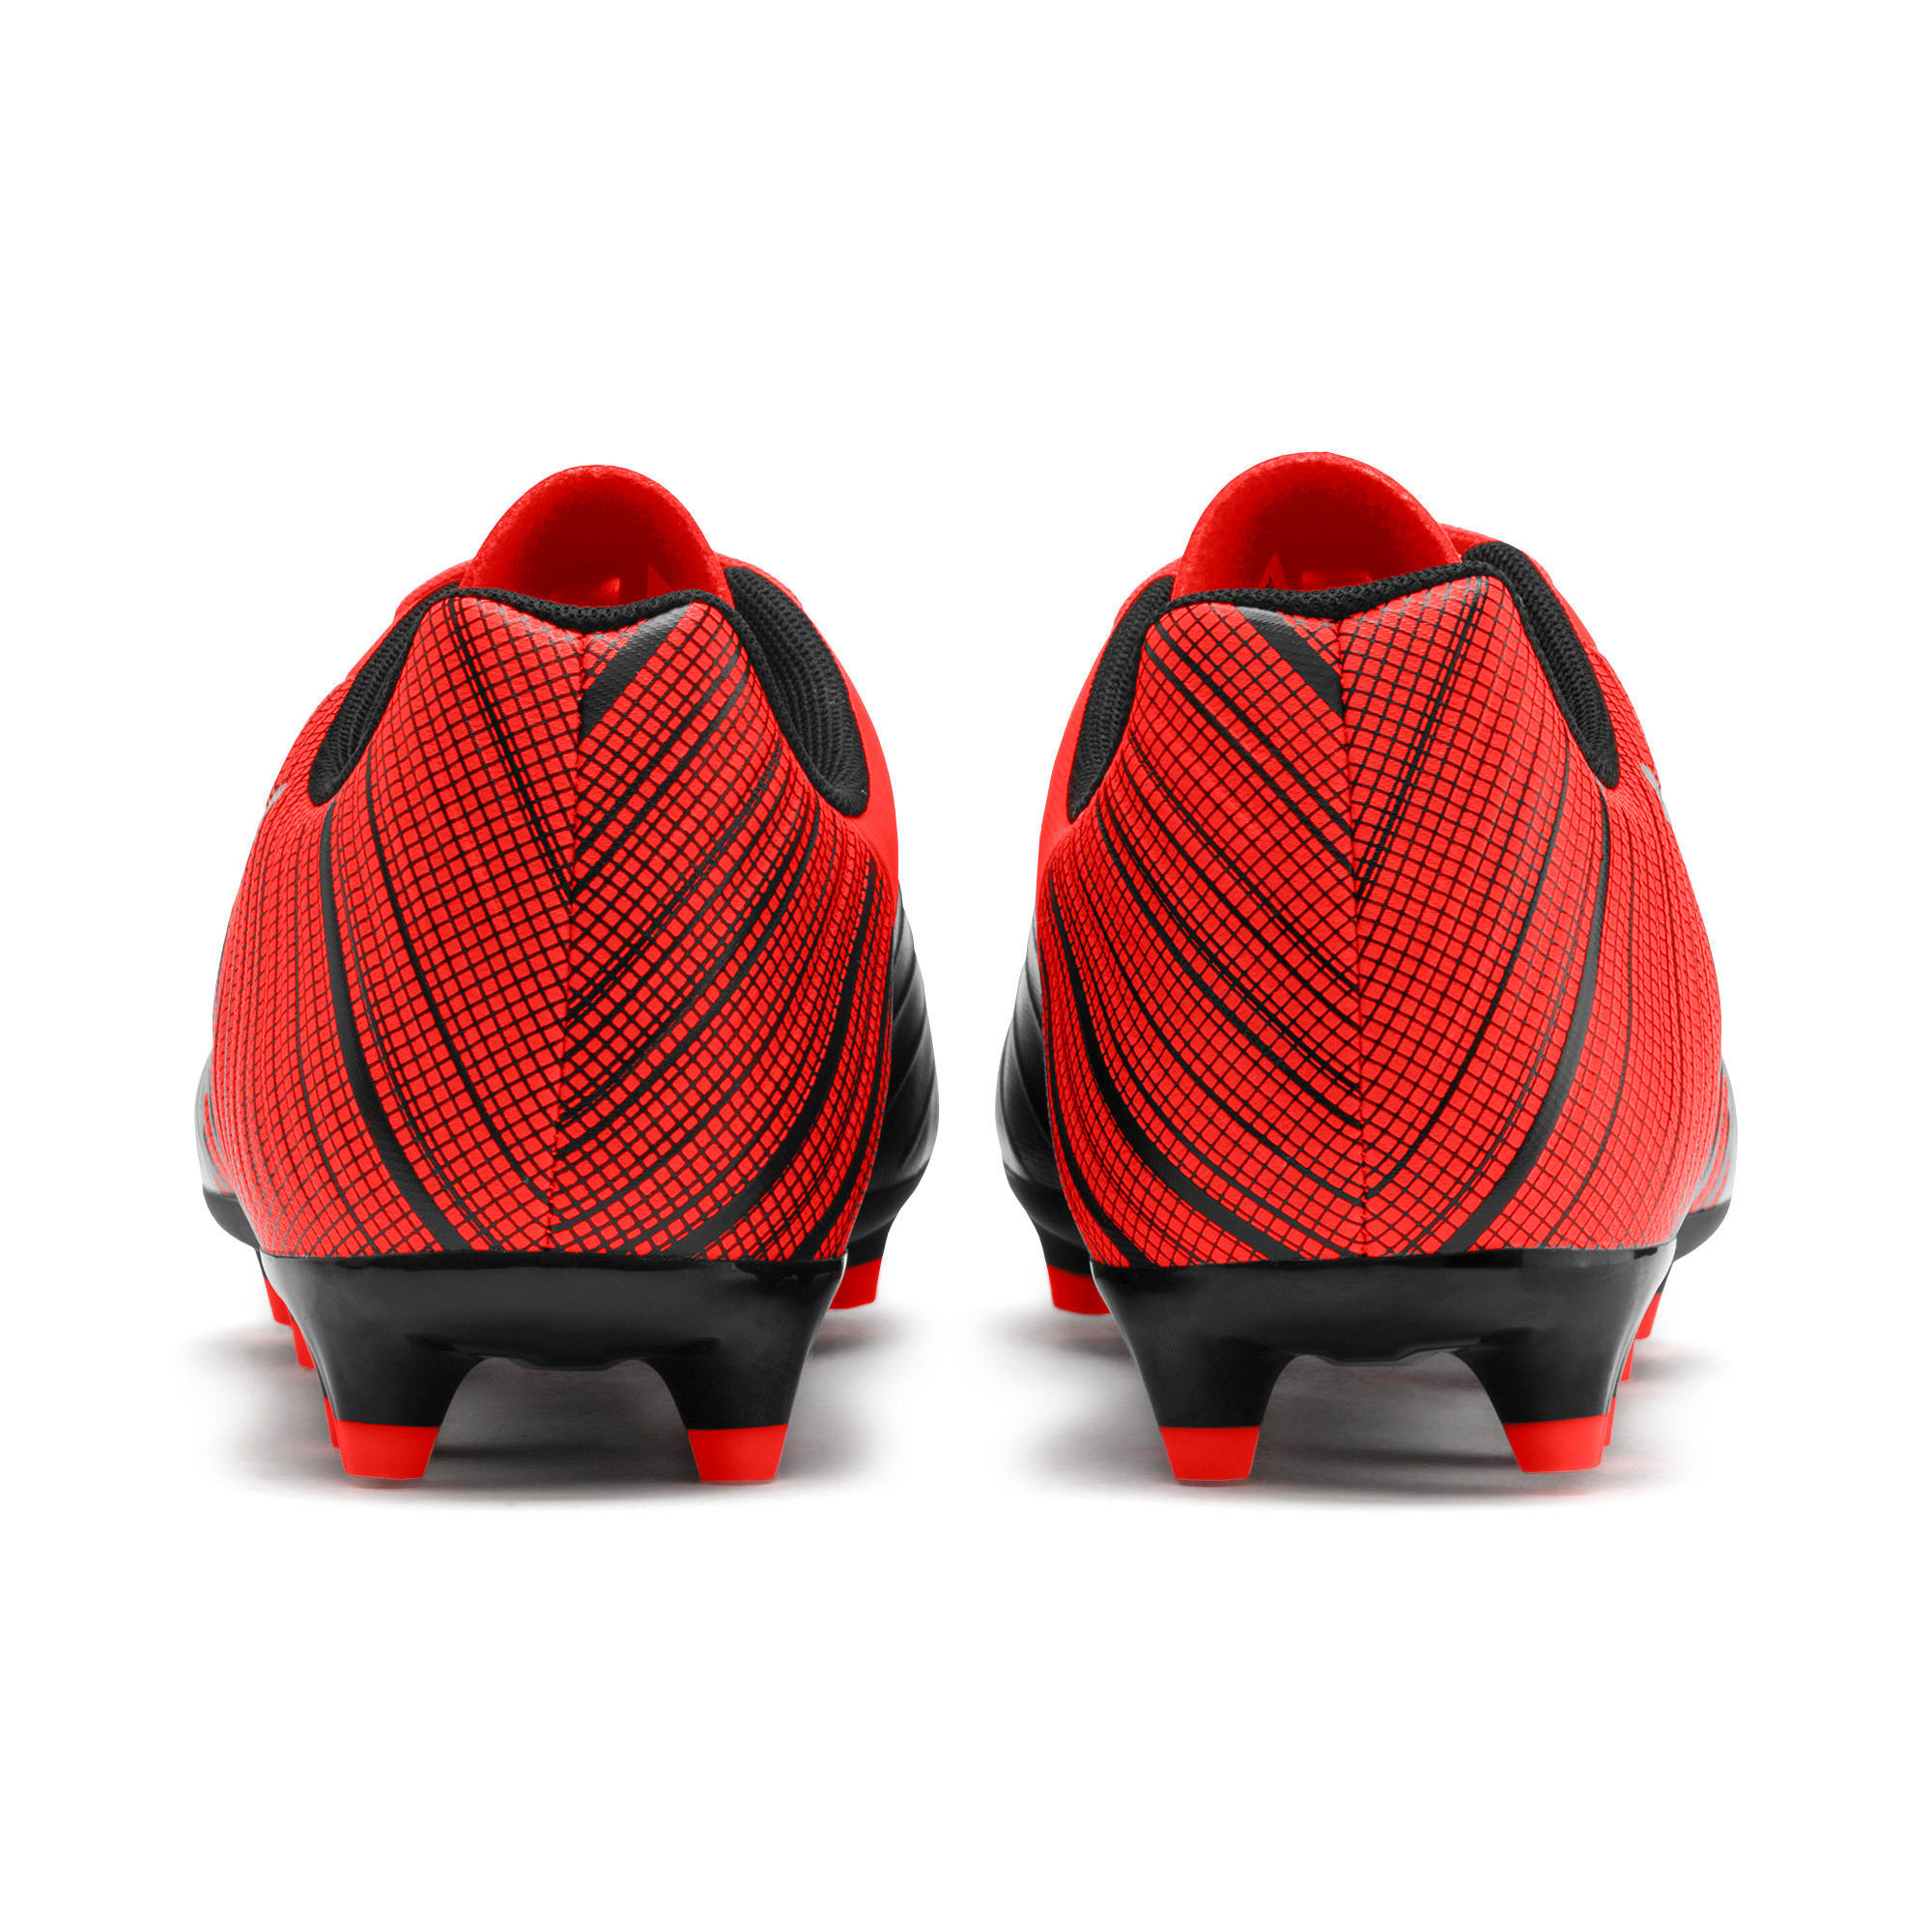 Thumbnail 4 of PUMA ONE 5.4 Men's FG/AG Football Boots, Black-Nrgy Red-Aged Silver, medium